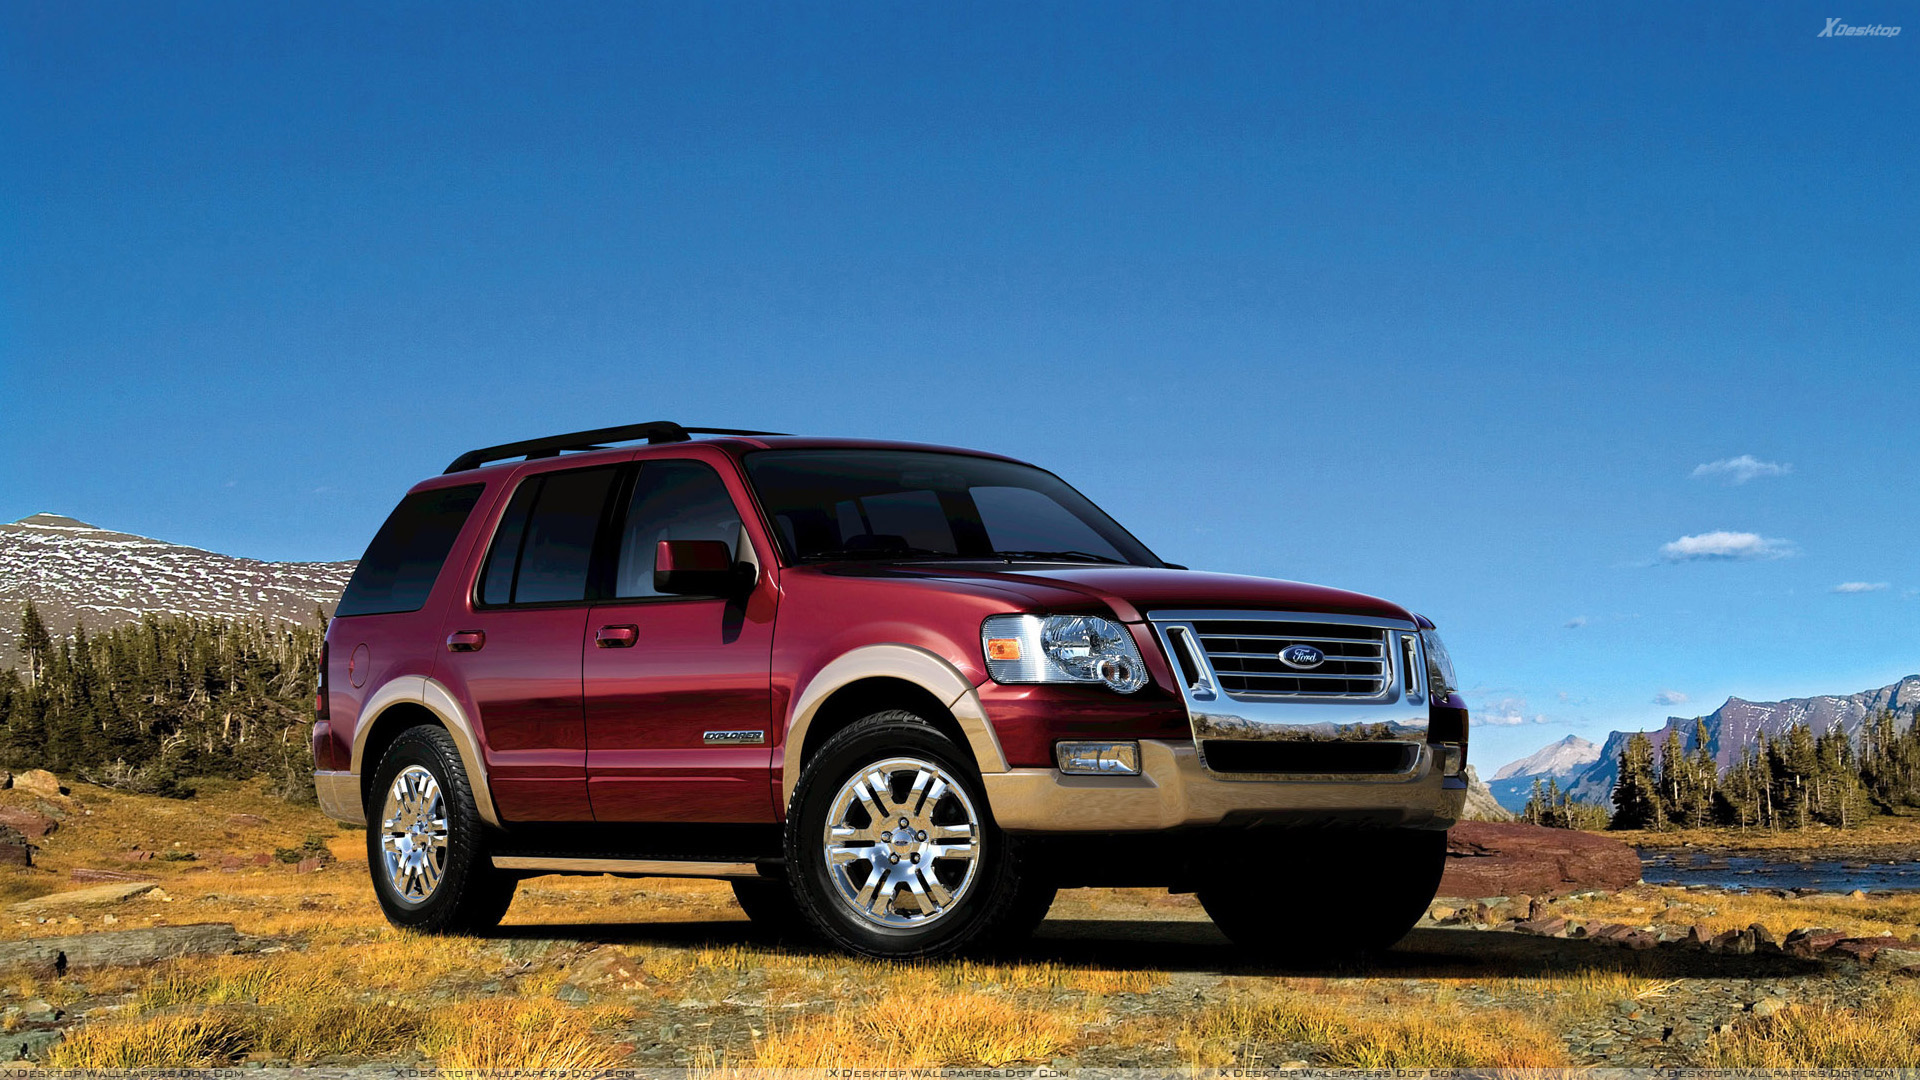 1920x1080 - Ford Explorer Wallpapers 31